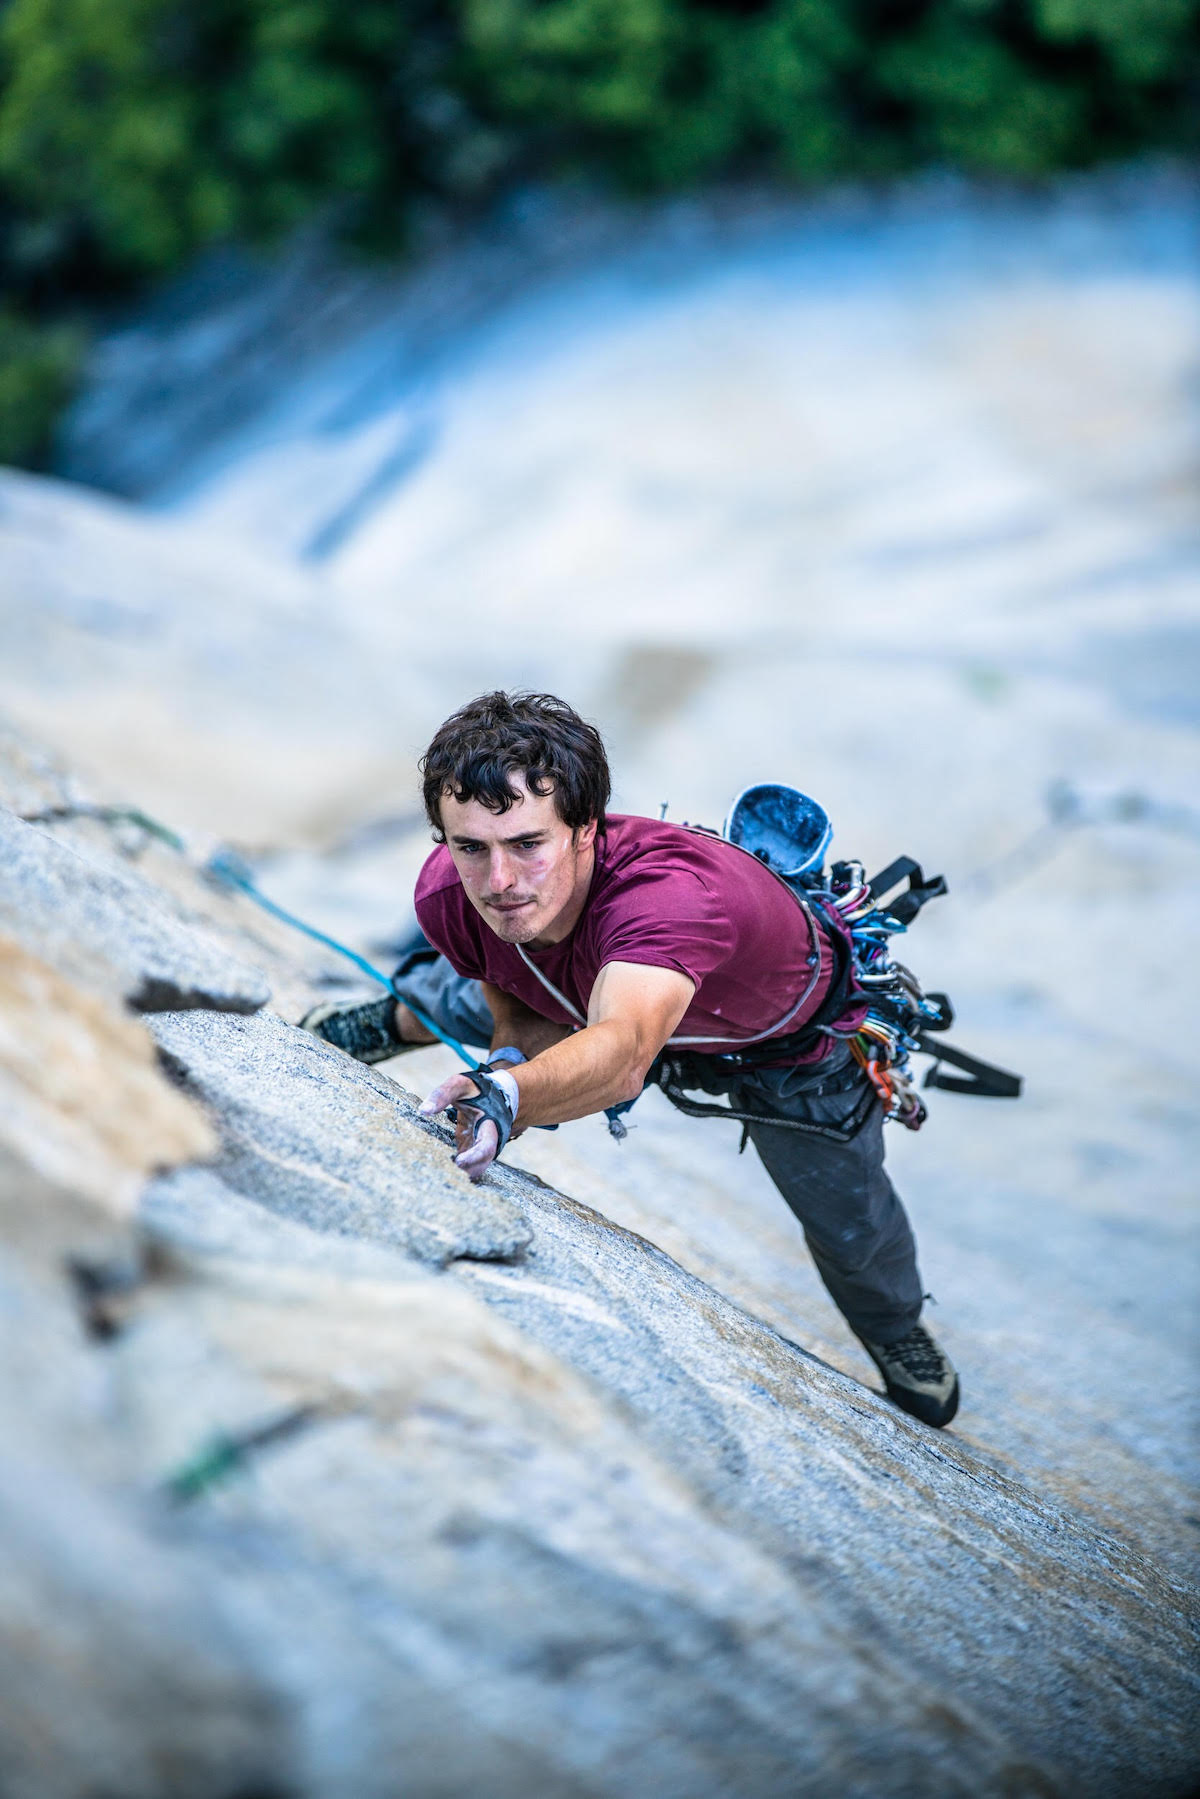 Brad Gobright climbing Lurking Fear (VI 5.7 C2, 2,000') on El Capitan.[Photo] Cheyne Lempe